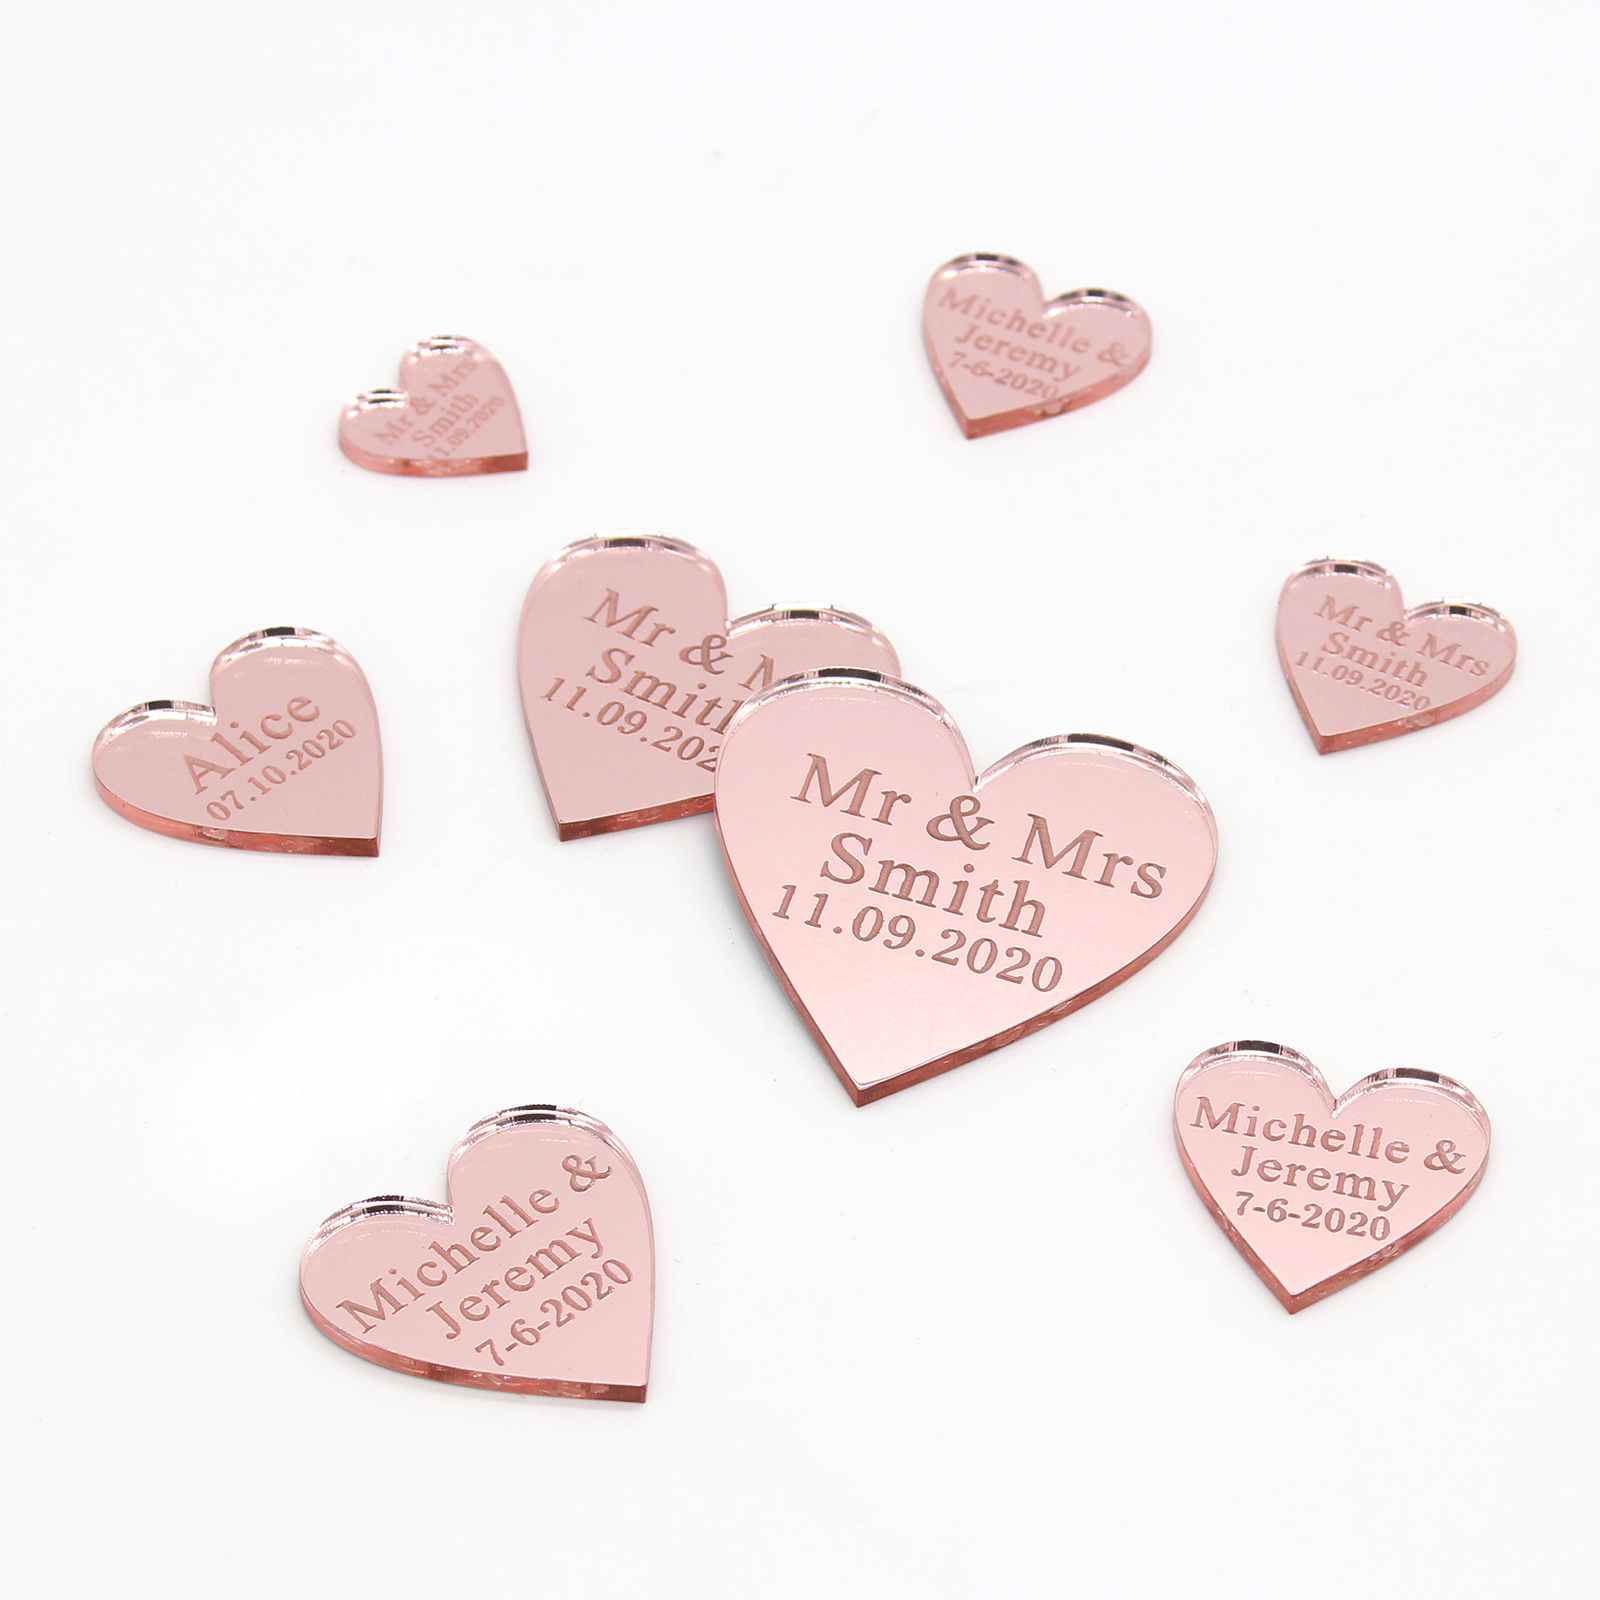 50Pcs Personalized Engraved Acrylic Mirror Love Heart With Hole Gift Tags Wedding Party Table Confetti Decor Centerpieces Favors Pakistan